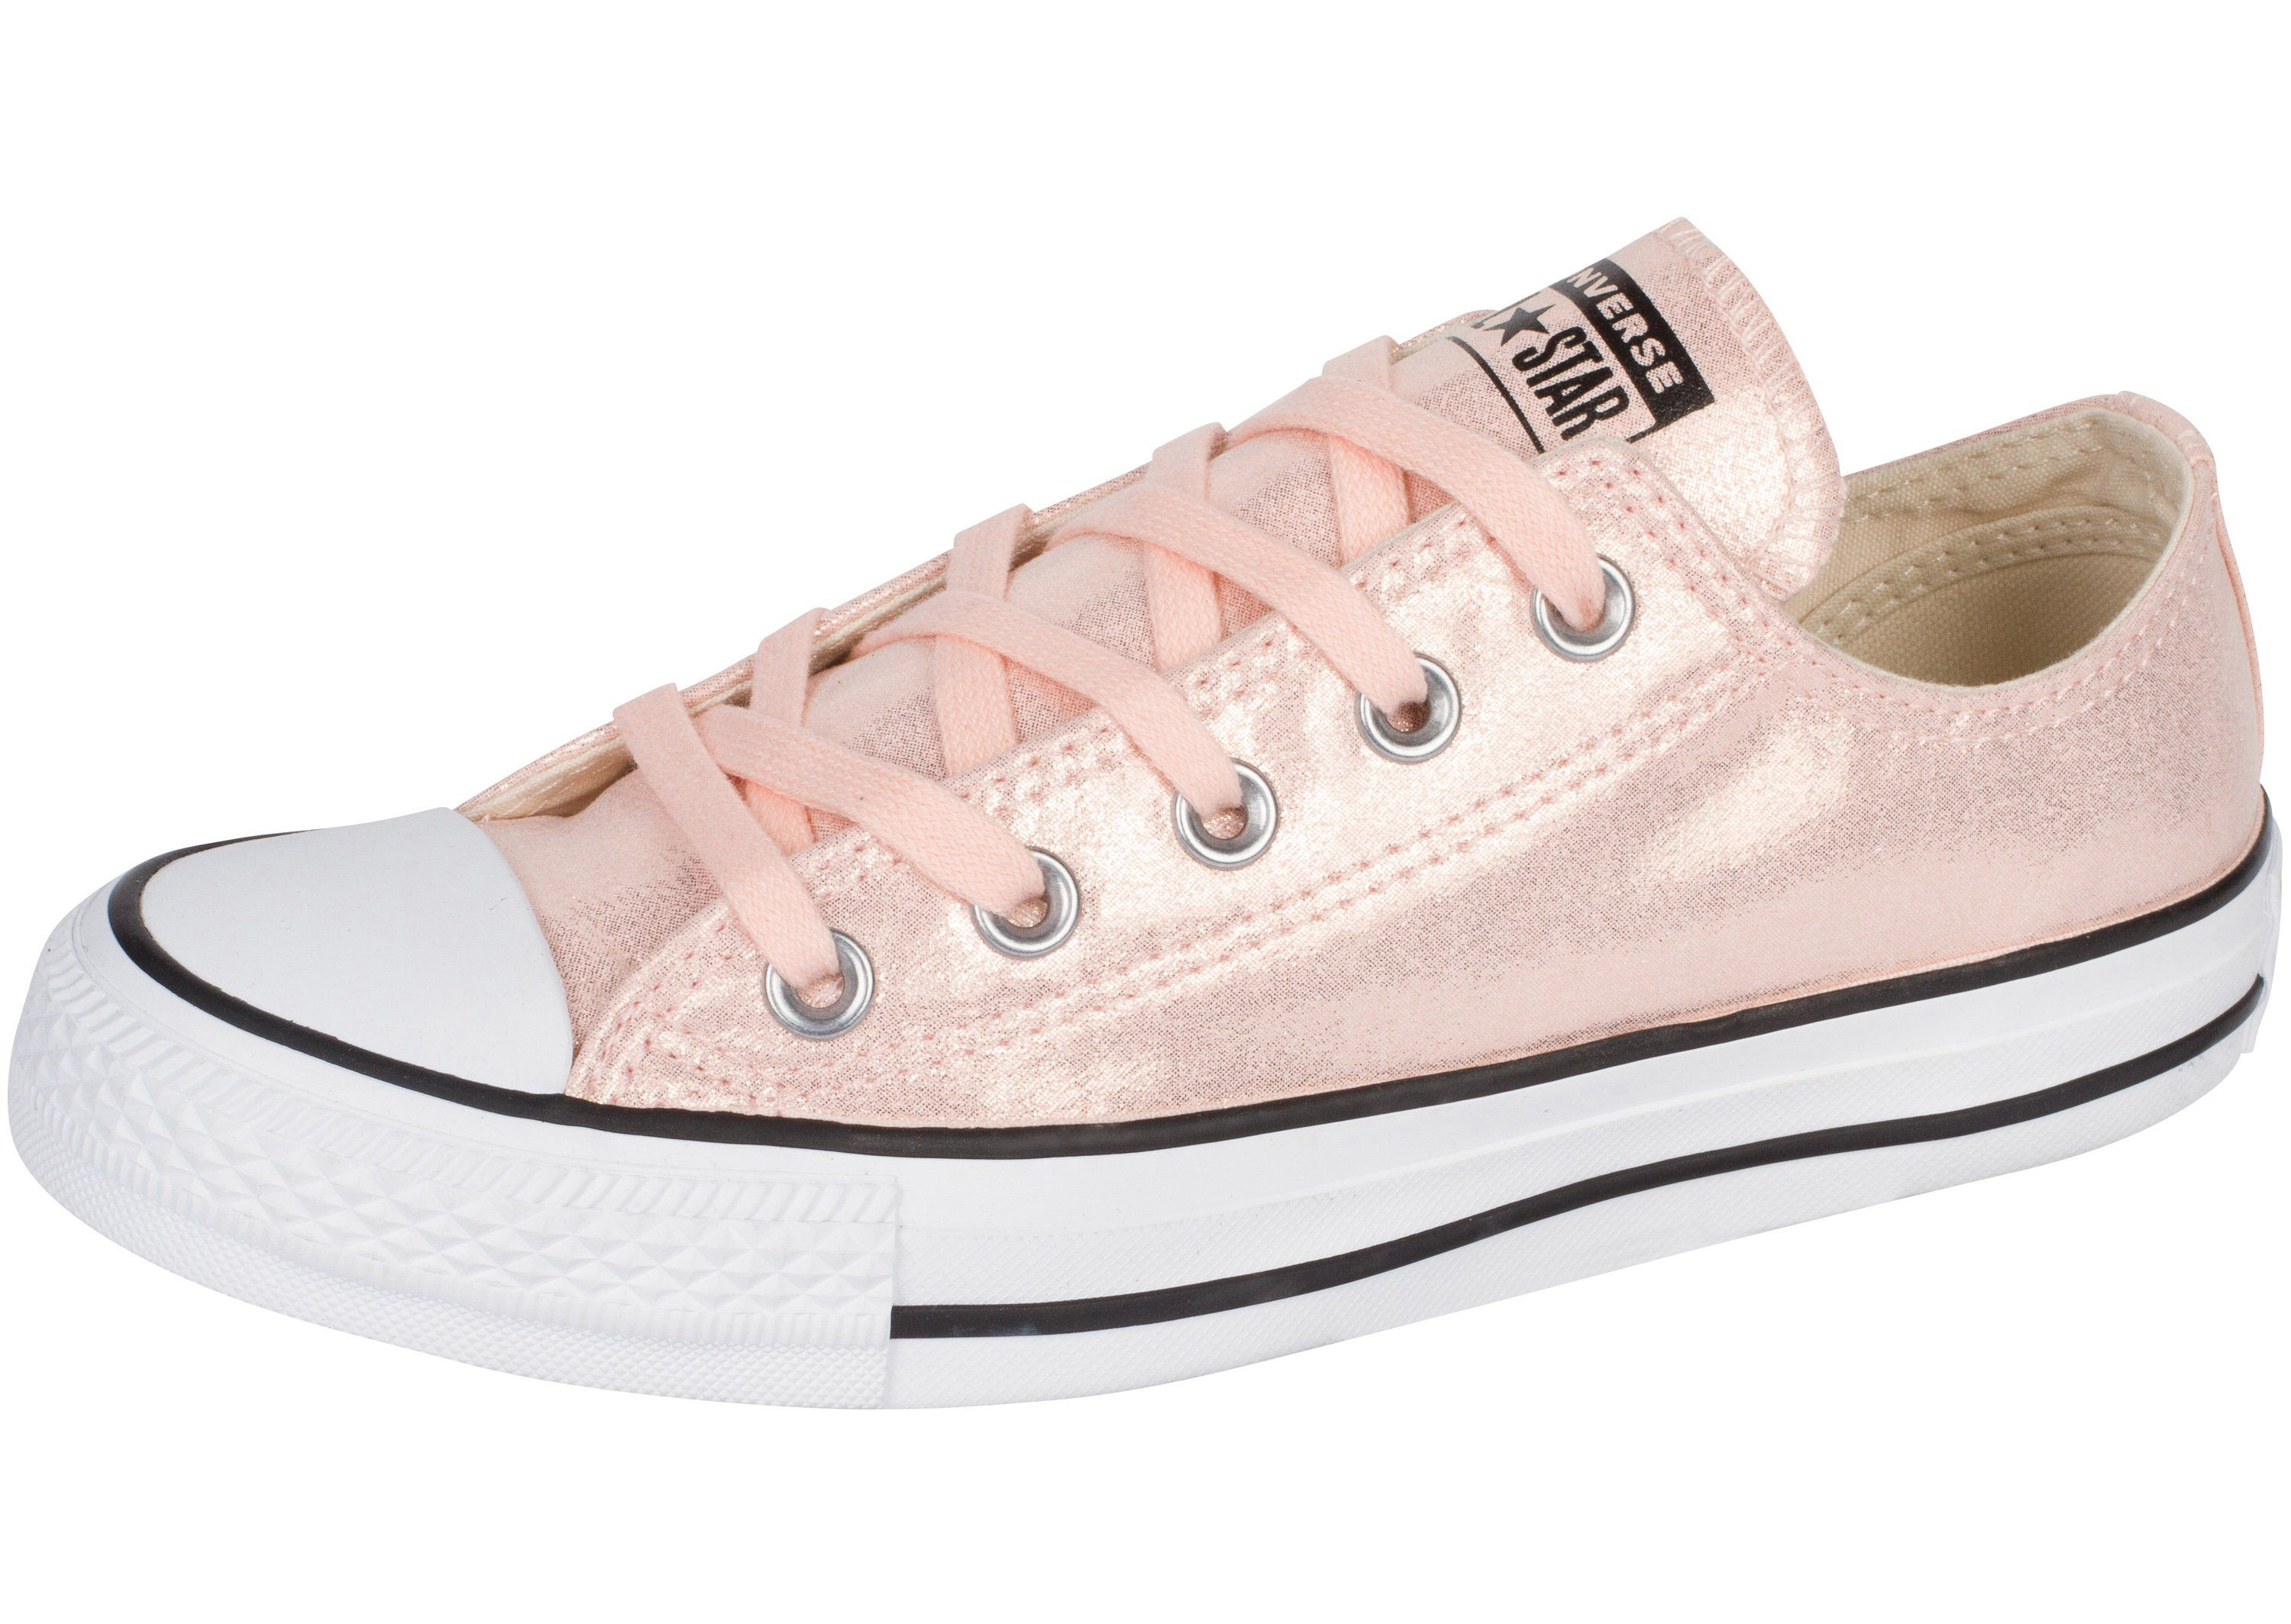 Shop - coral converse womens - OFF 76